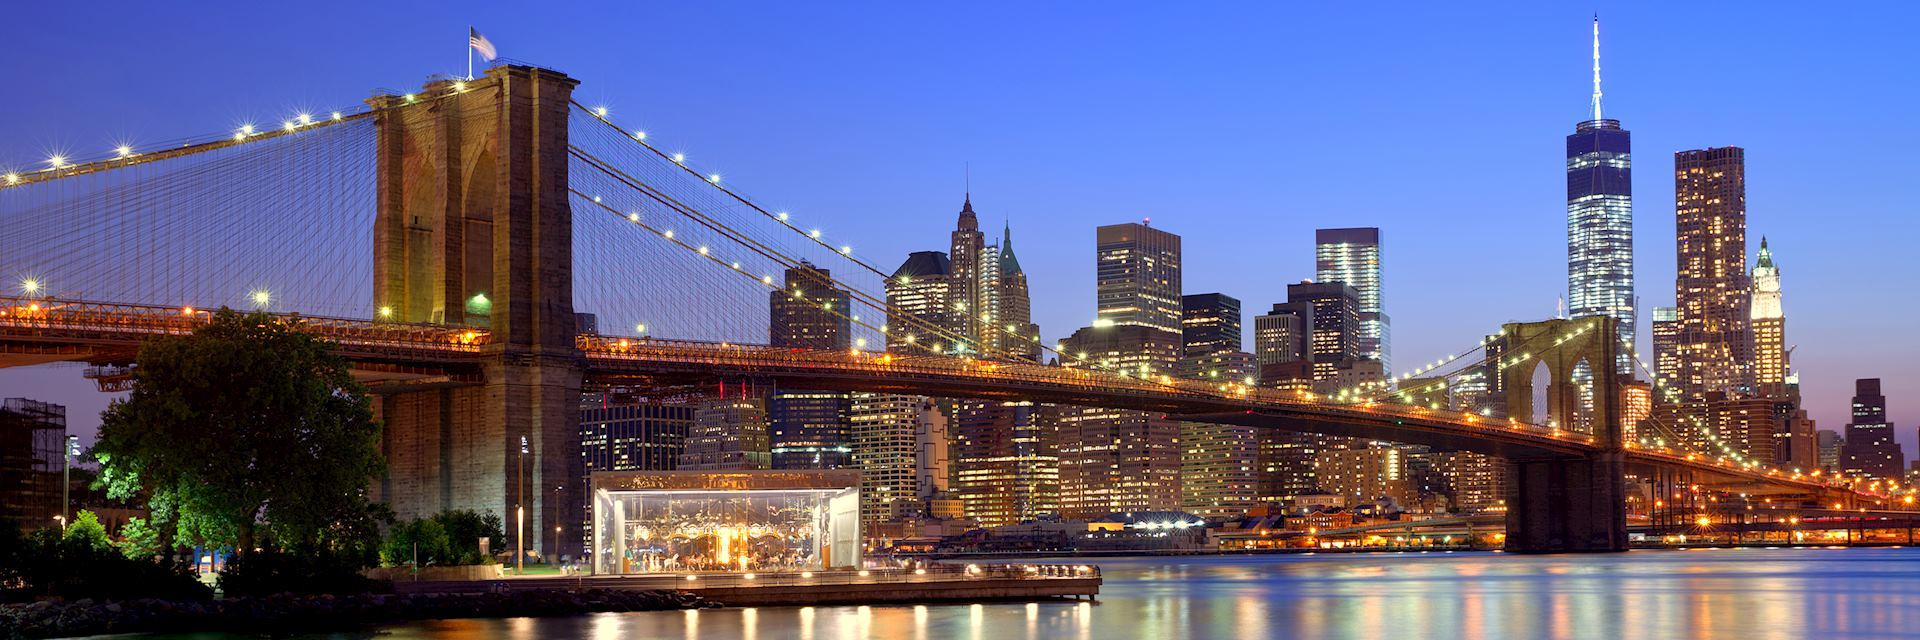 Brooklyn Bridge at sunset, New York